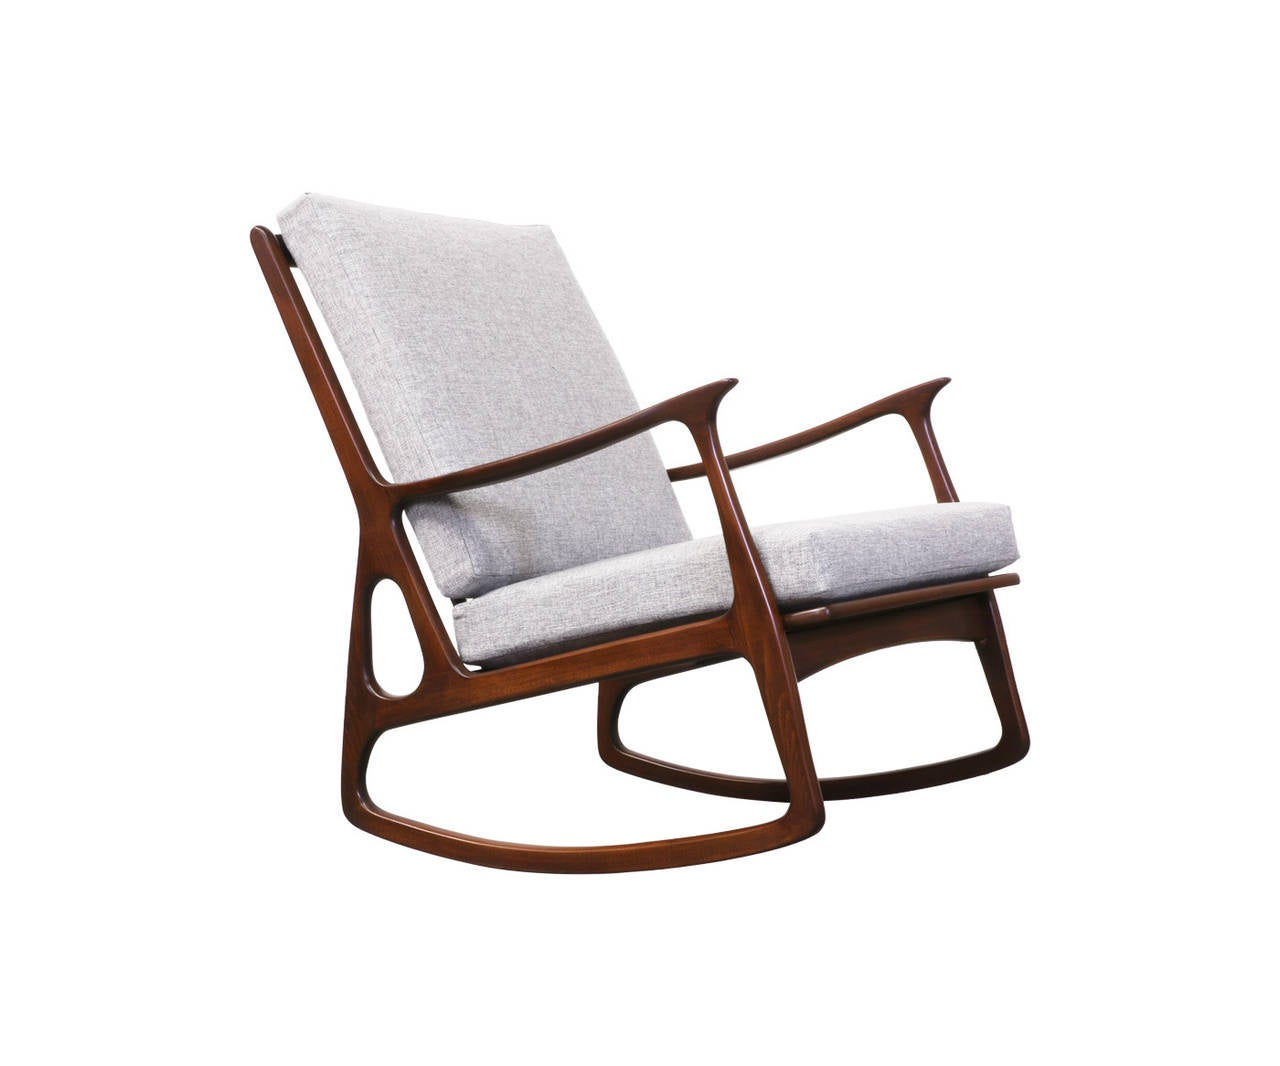 this midcentury italian walnut rocking chair is no longer available